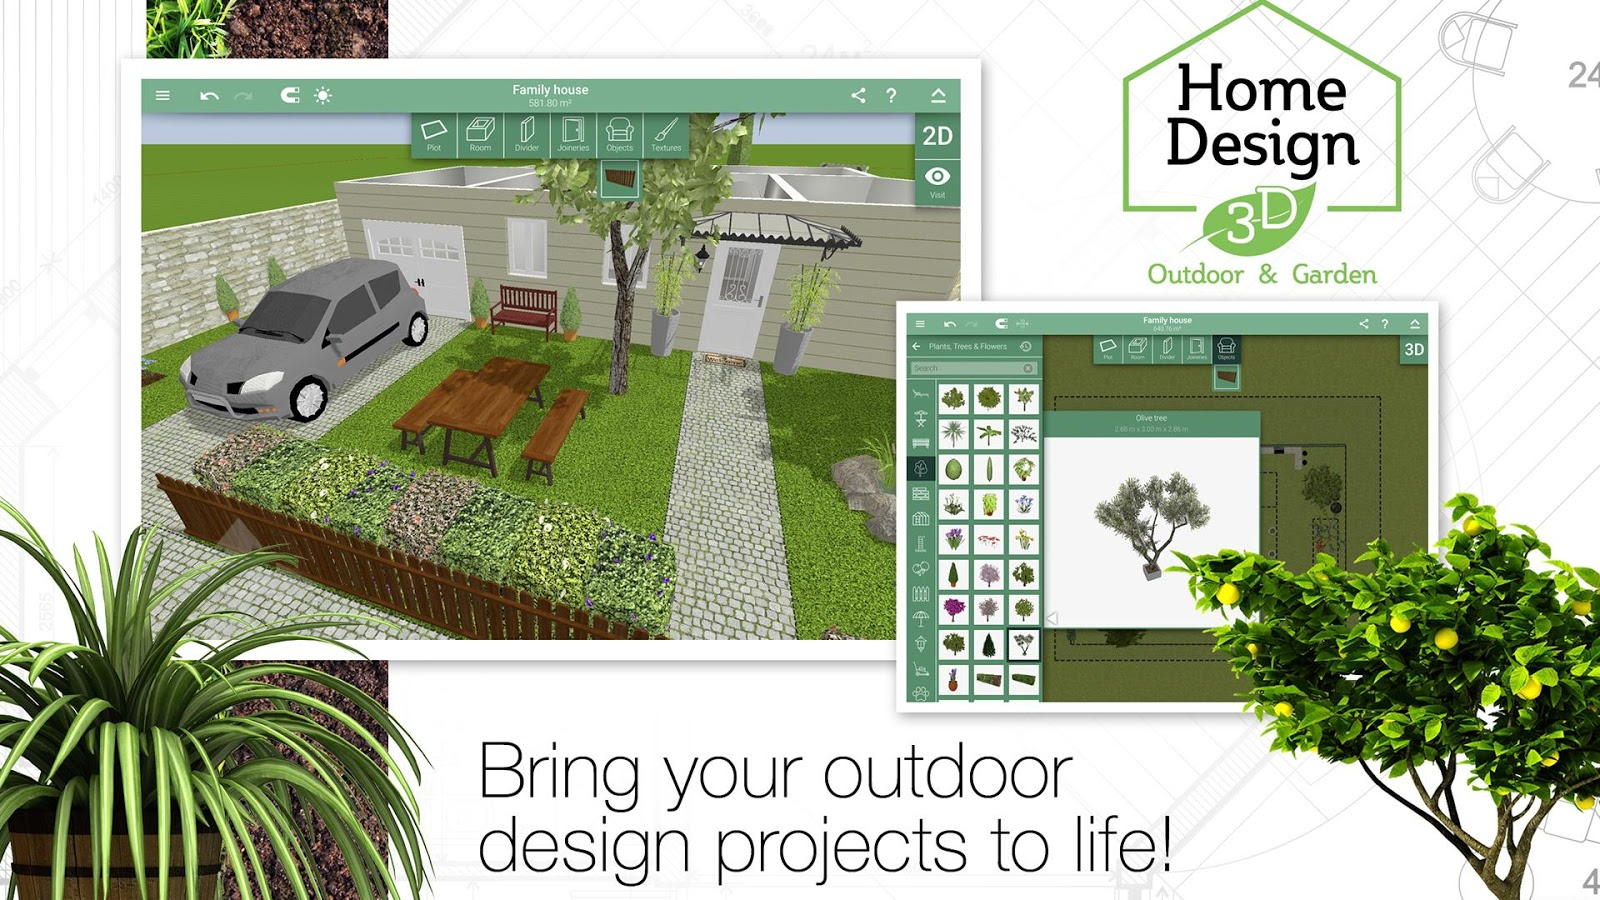 Home design 3d outdoor garden android apps on google play for New home garden design